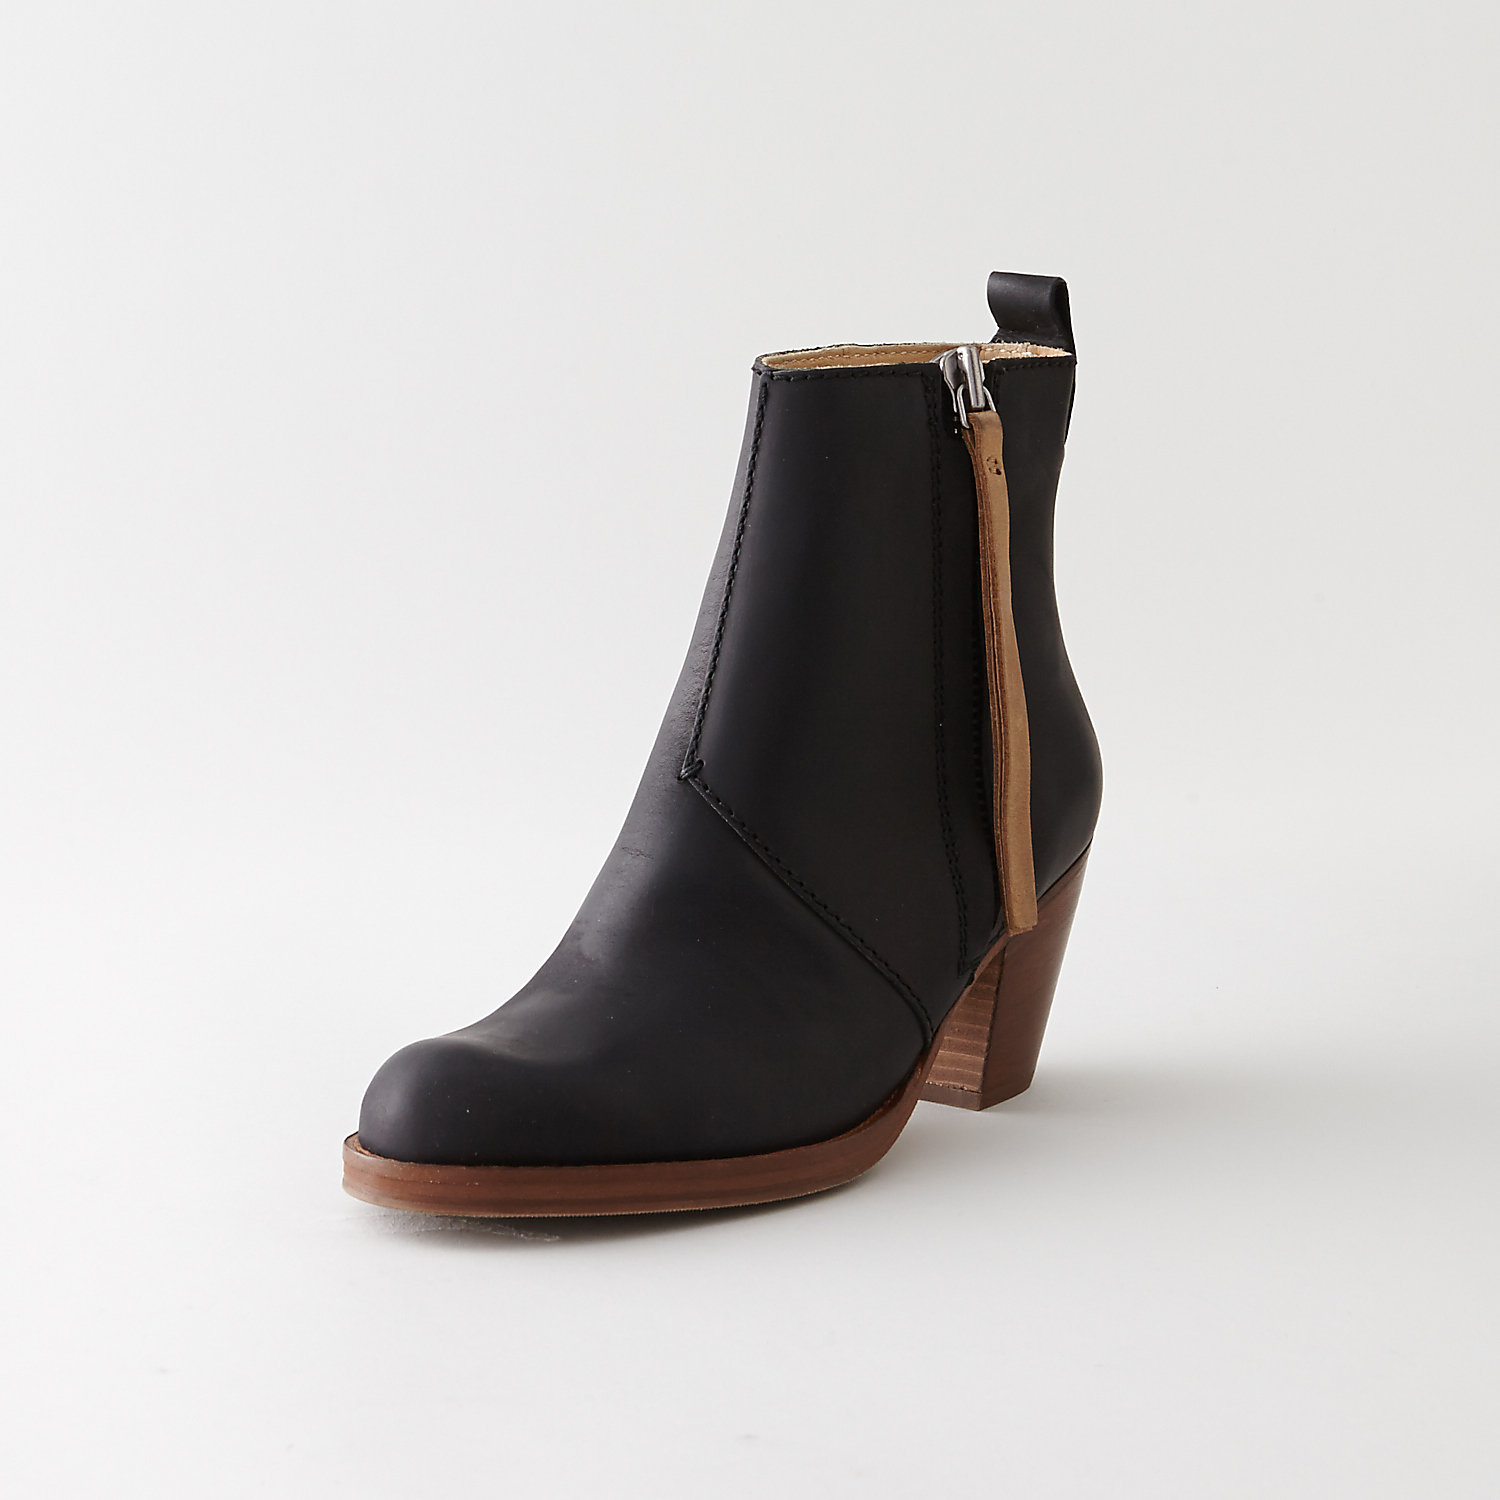 Acne Pistol Short Boot Contrast in Black | Lyst